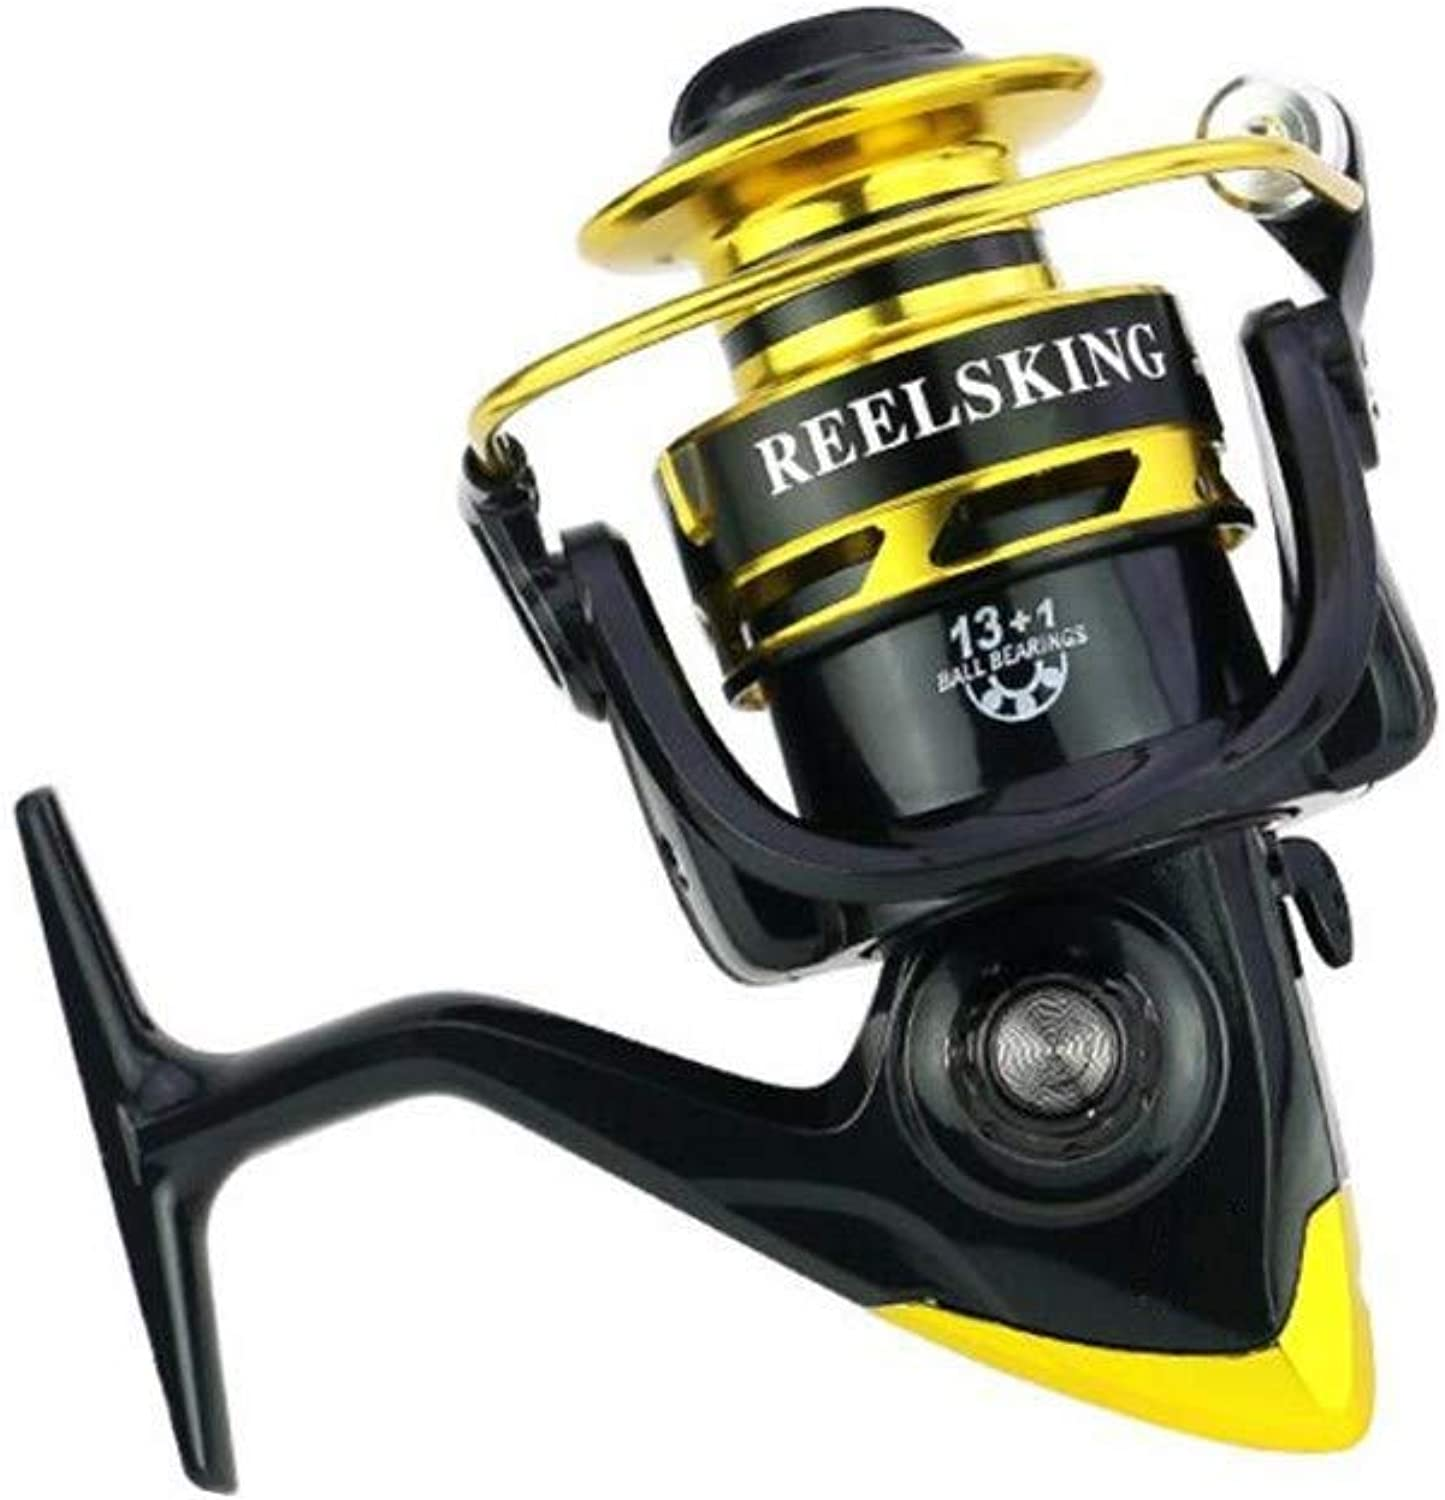 Fast redating Reel, 13+1BB Bearing Light and Smooth, 1000 to 7000 Series, Left Right Interchangeable redating Reel seawater Freshwater Fishing